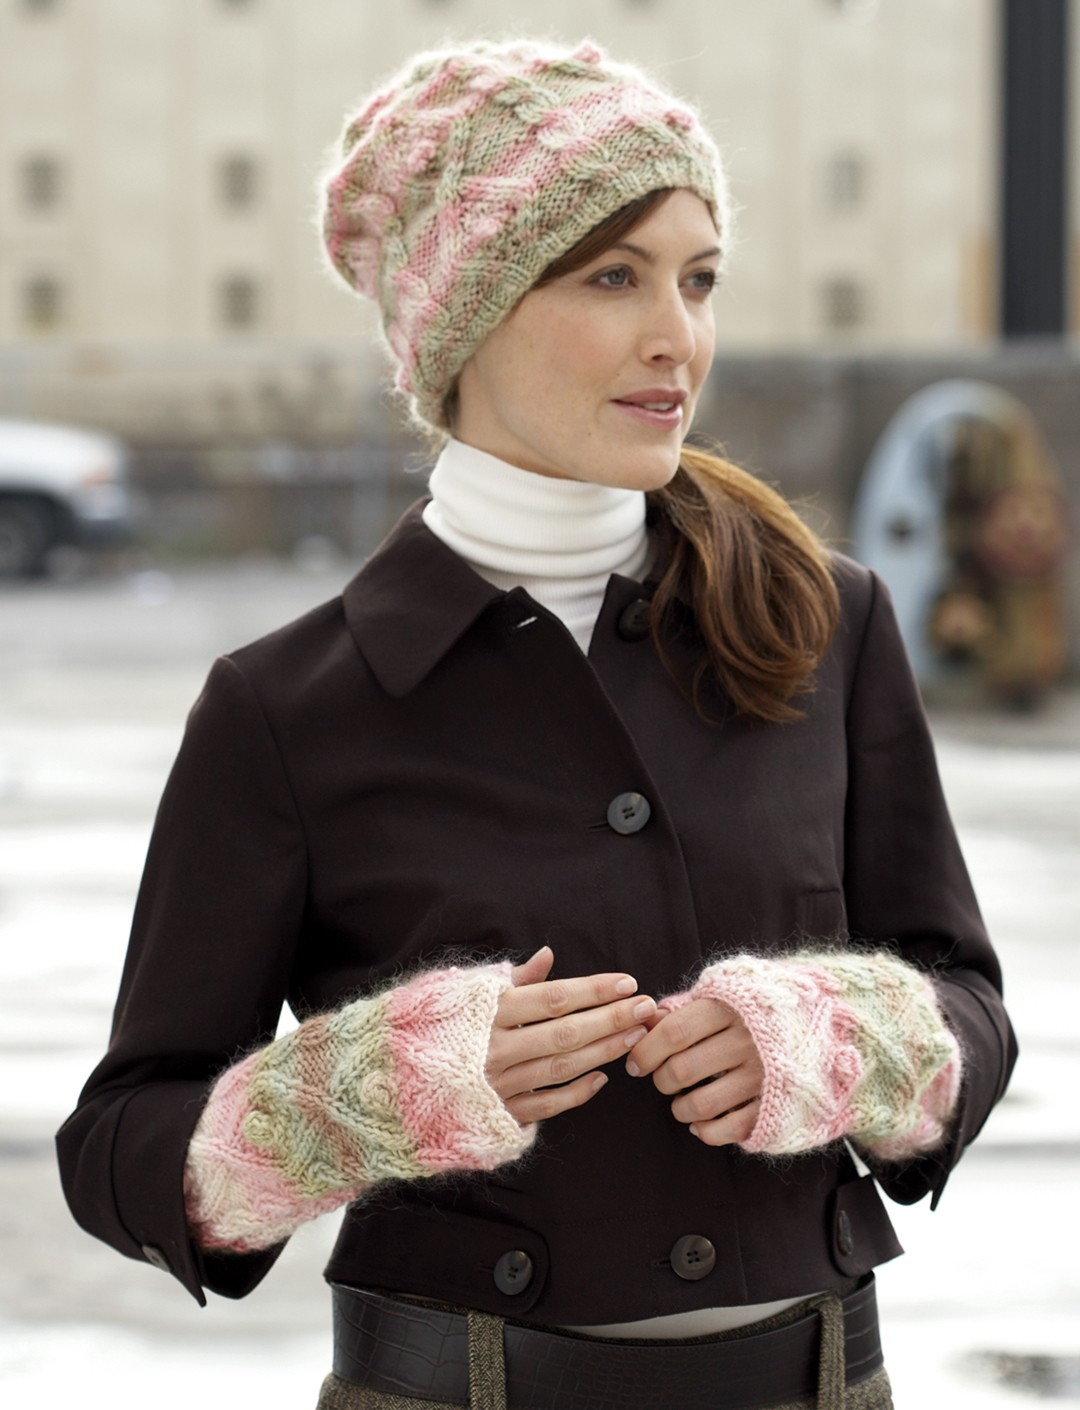 Cable Hat and Wrist Warmers